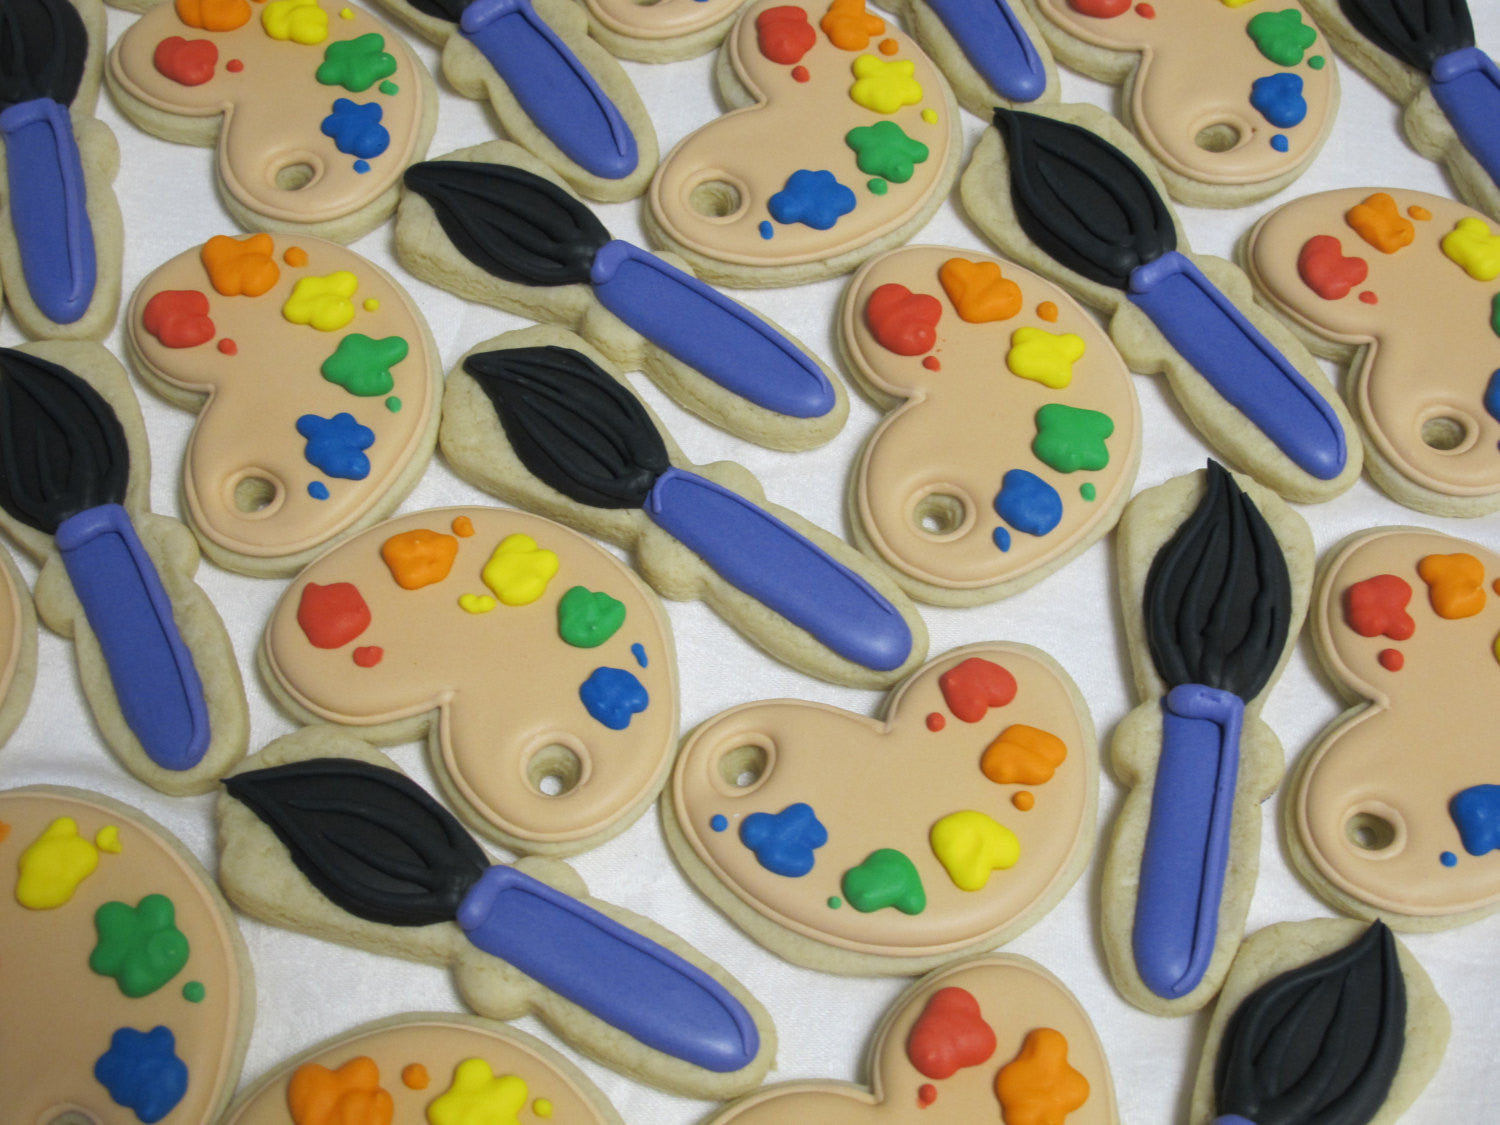 Artist Birthday Party Cookies-Painter Cookies-Paint Palette Paint Brush Cookies